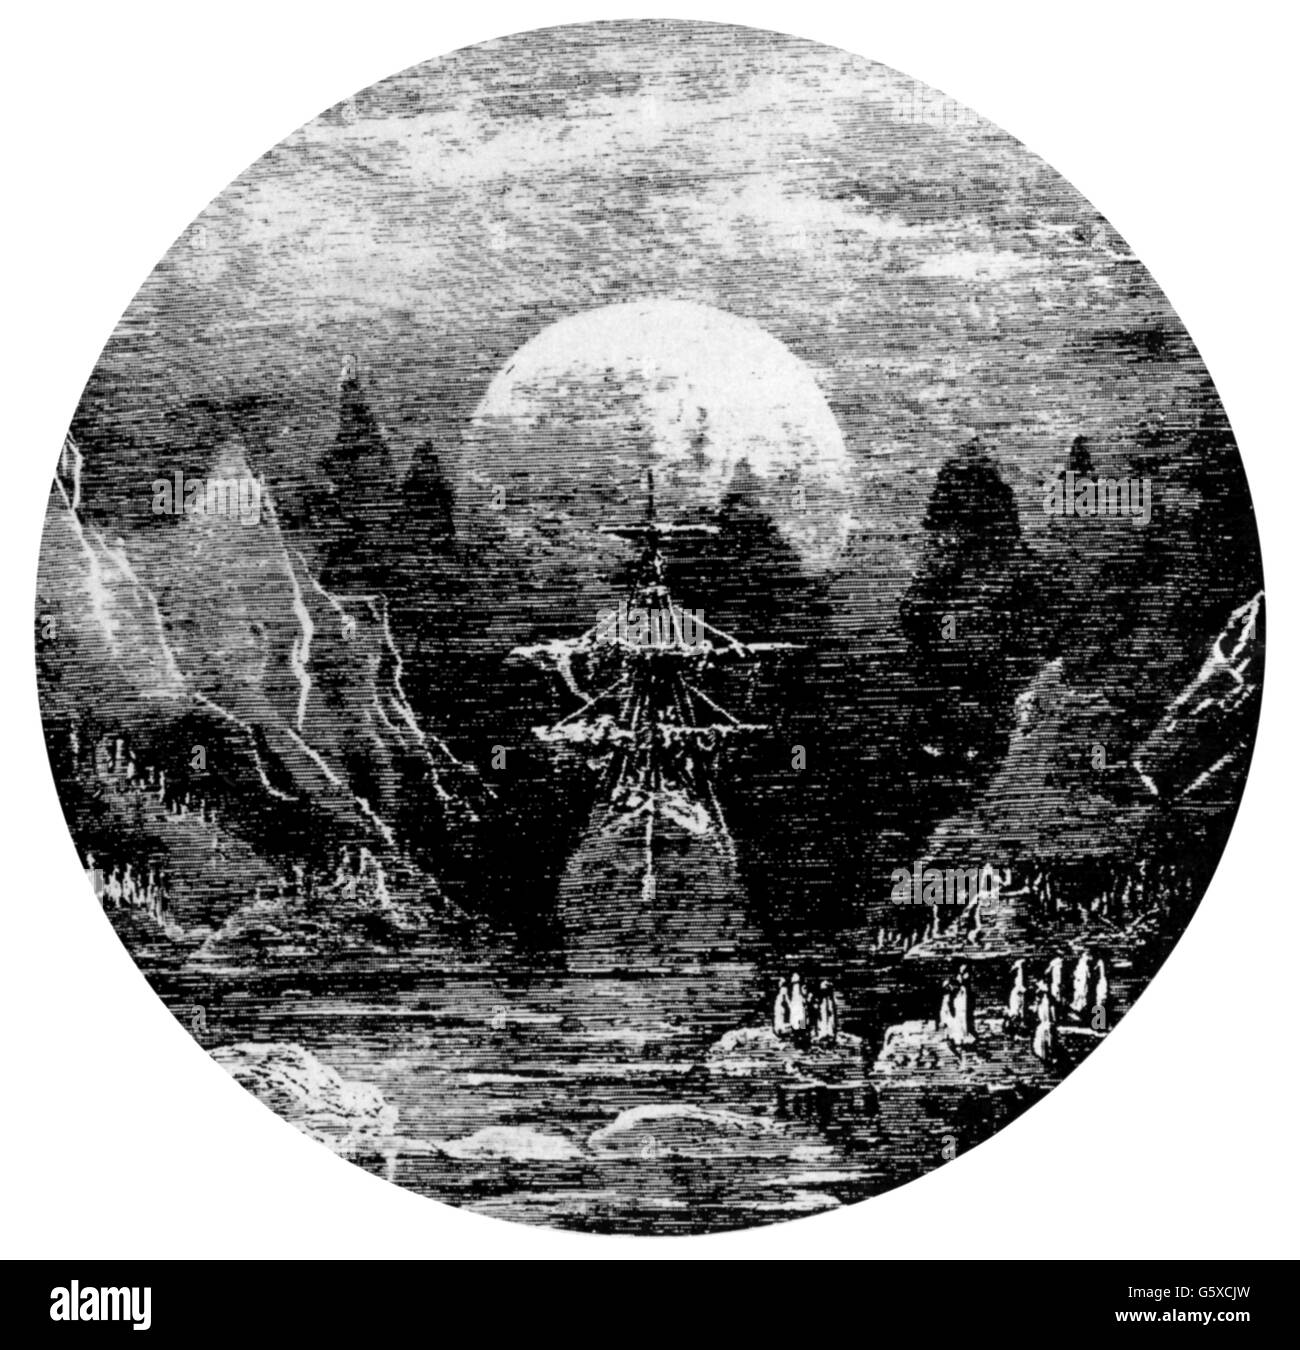 science, polar research, ship in a polar landscape during moonlight, wood engraving, late 19th century, transport, - Stock Image